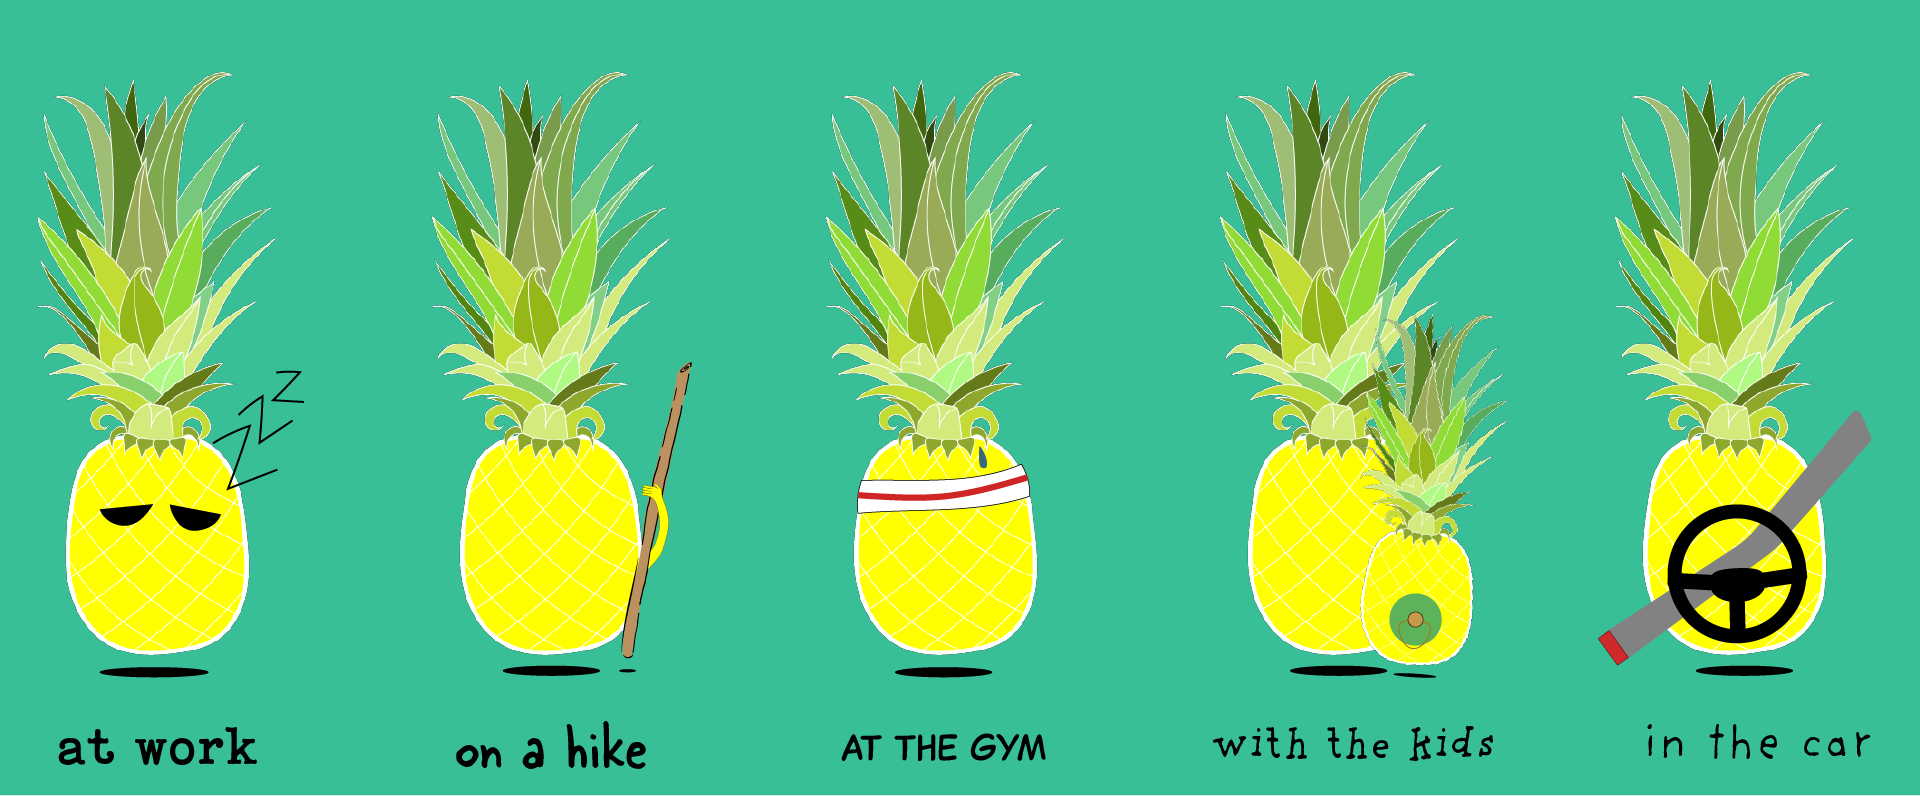 PINEAPPLE CHIPS | Where to eat PINEAPPLE CHIPS